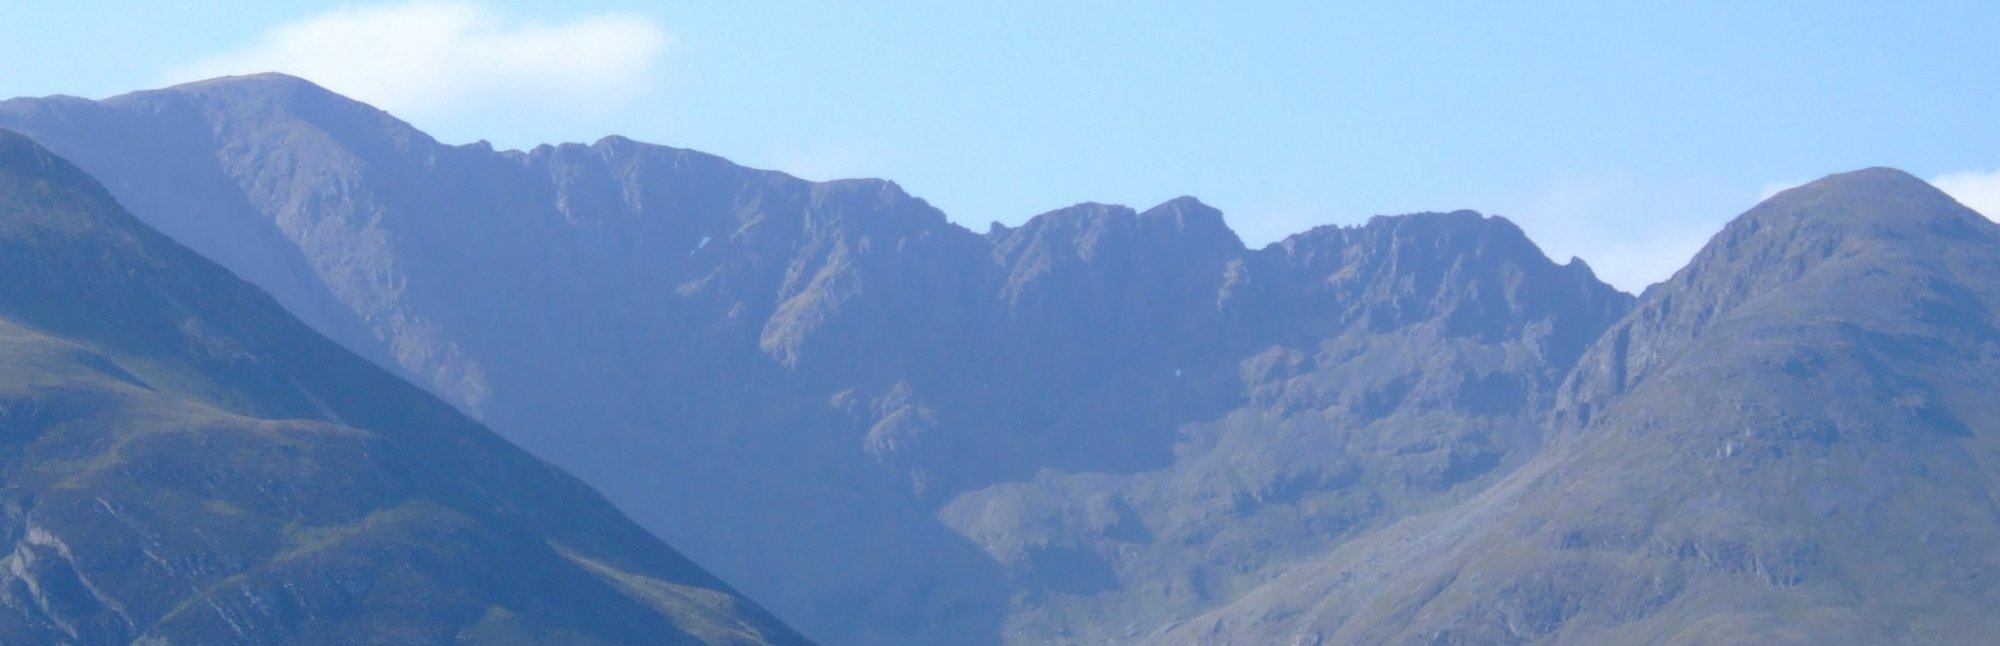 The jagged, knife-edged ridge of the Aonach Eagach